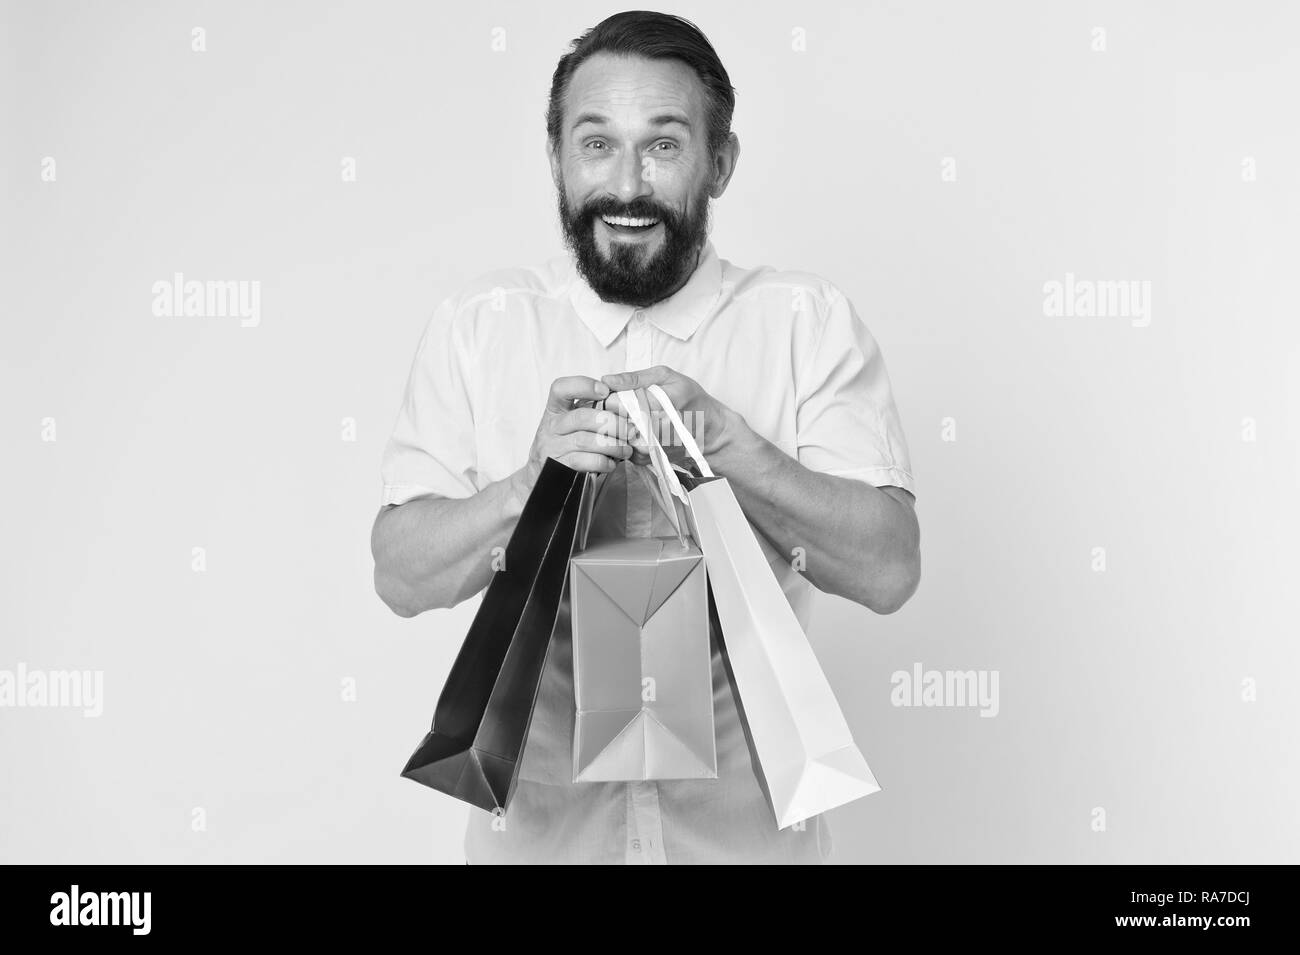 Presents make life more interesting. Man mature bearded cheerful face holds shopping bags. Man got unexpectable gifts. Guy touched by attention and gifts for him yellow background. Sincere emotions. - Stock Image